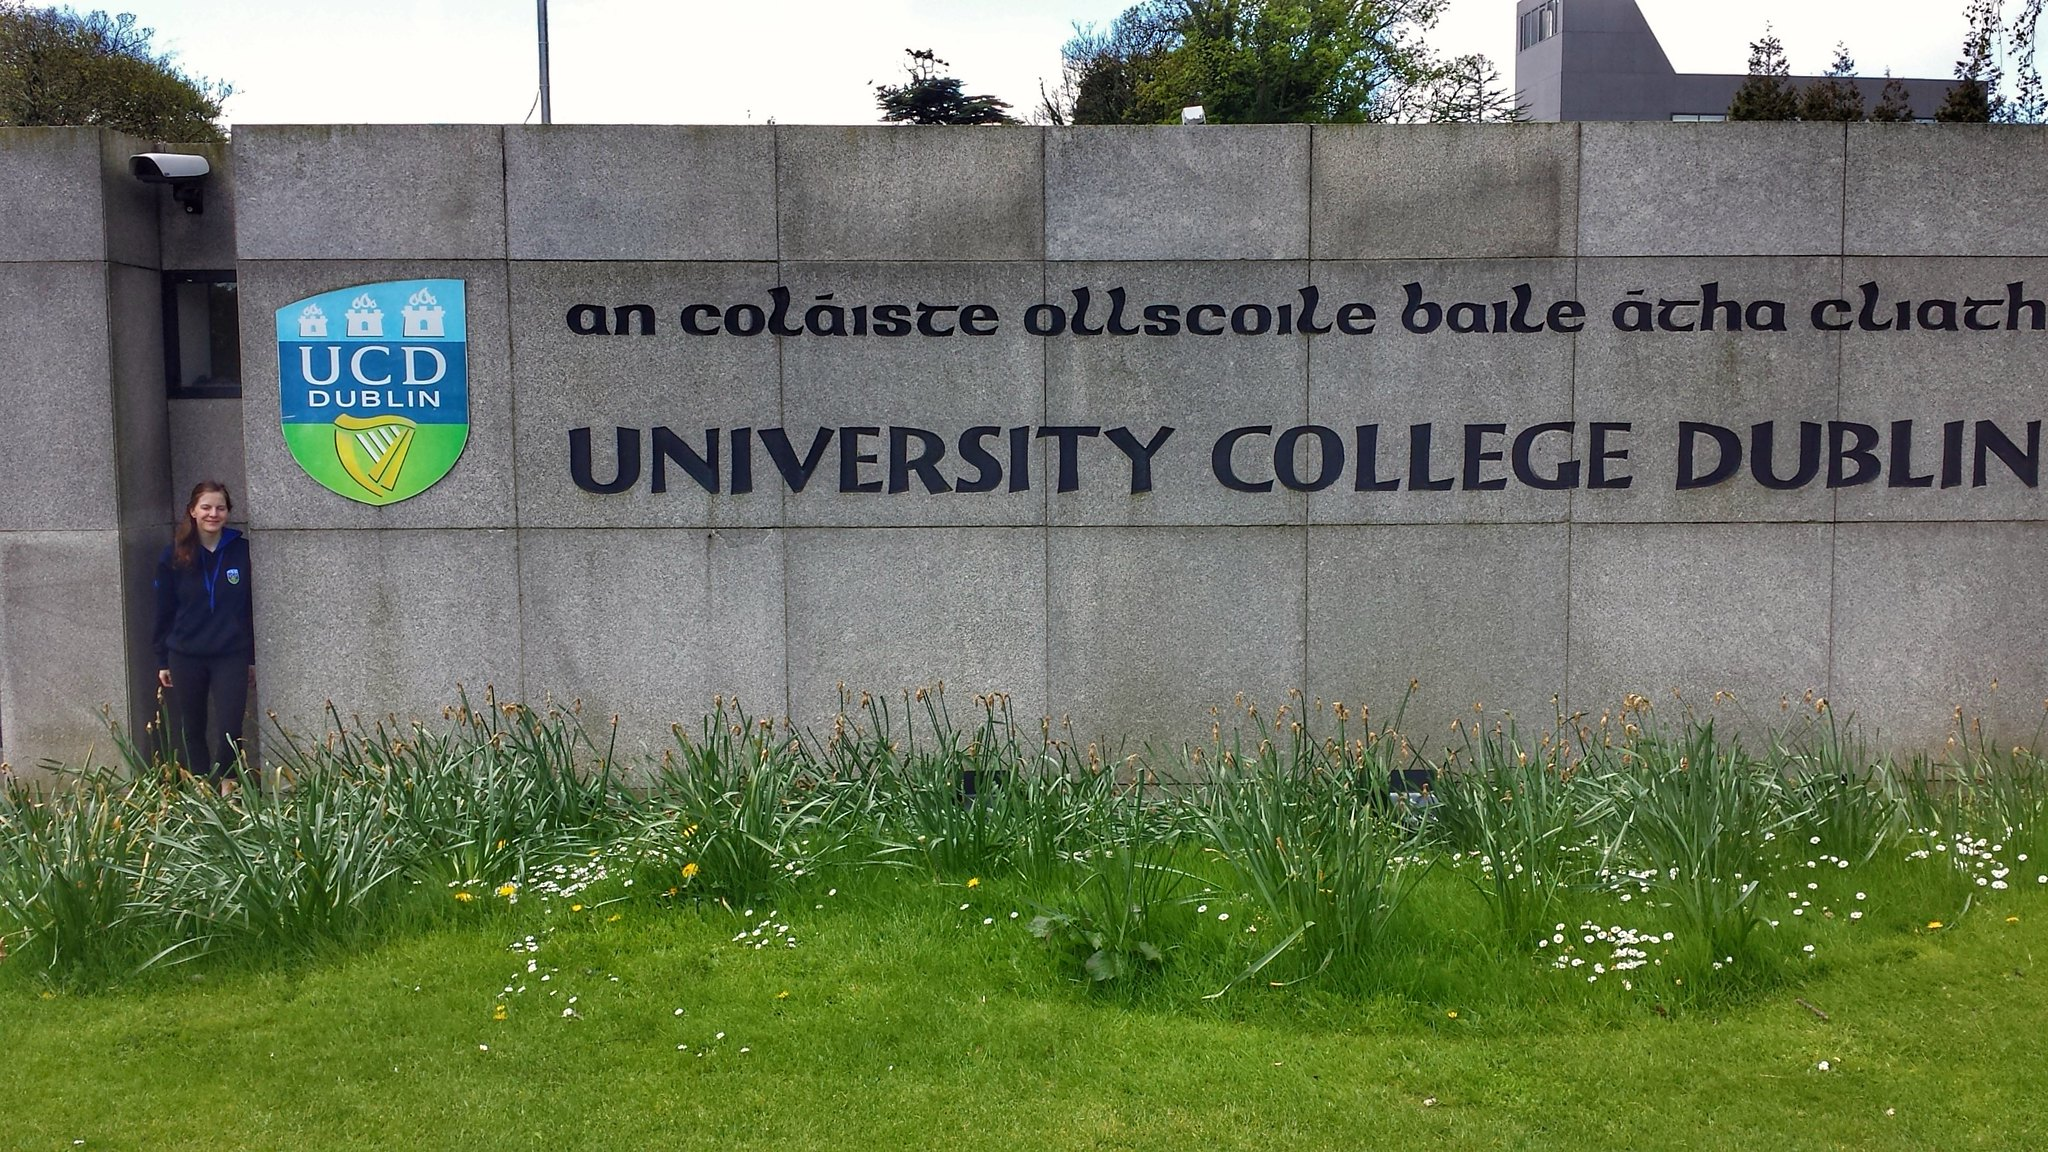 University College Dublin sign